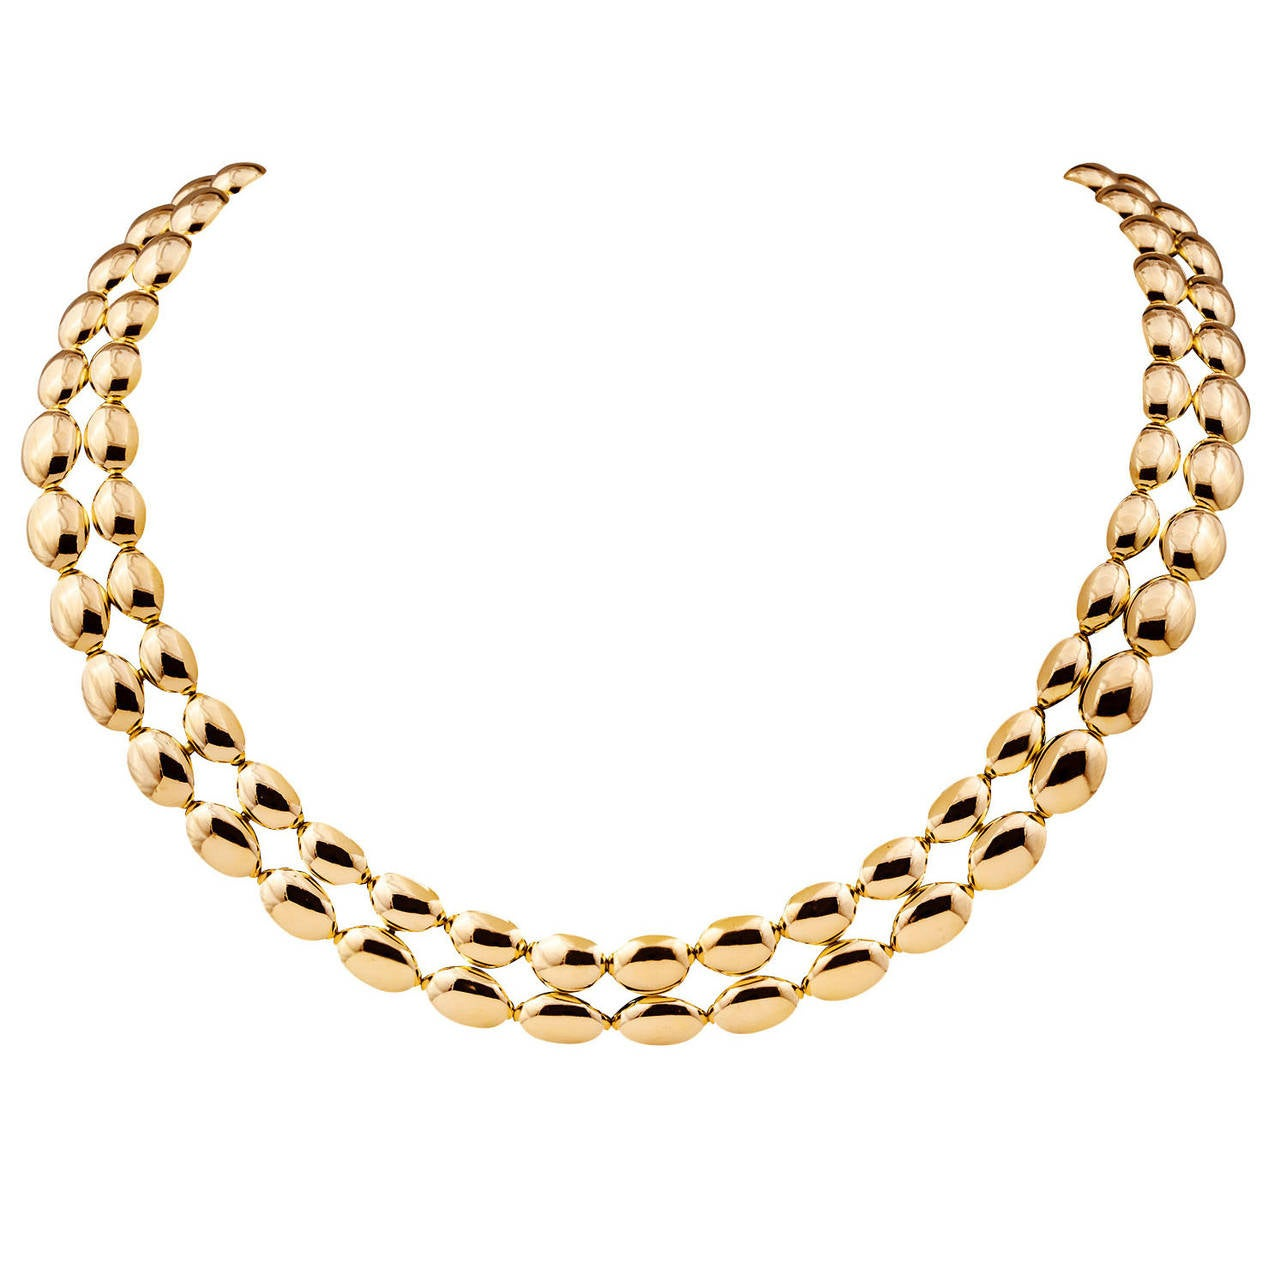 Chaumet Domed Oval Link Gold Necklace